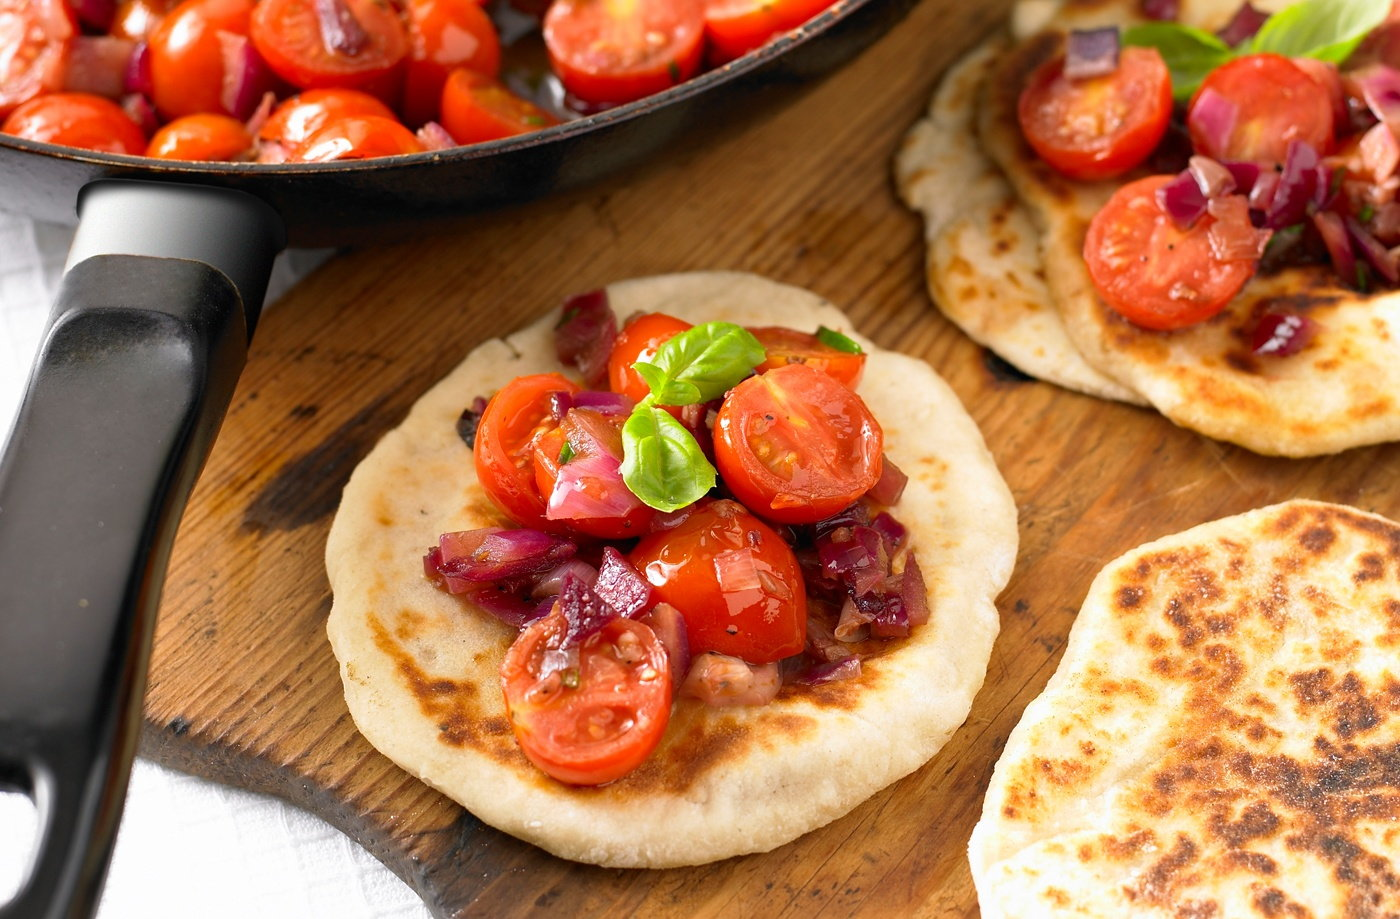 Flatbreads with tomato topping recipe